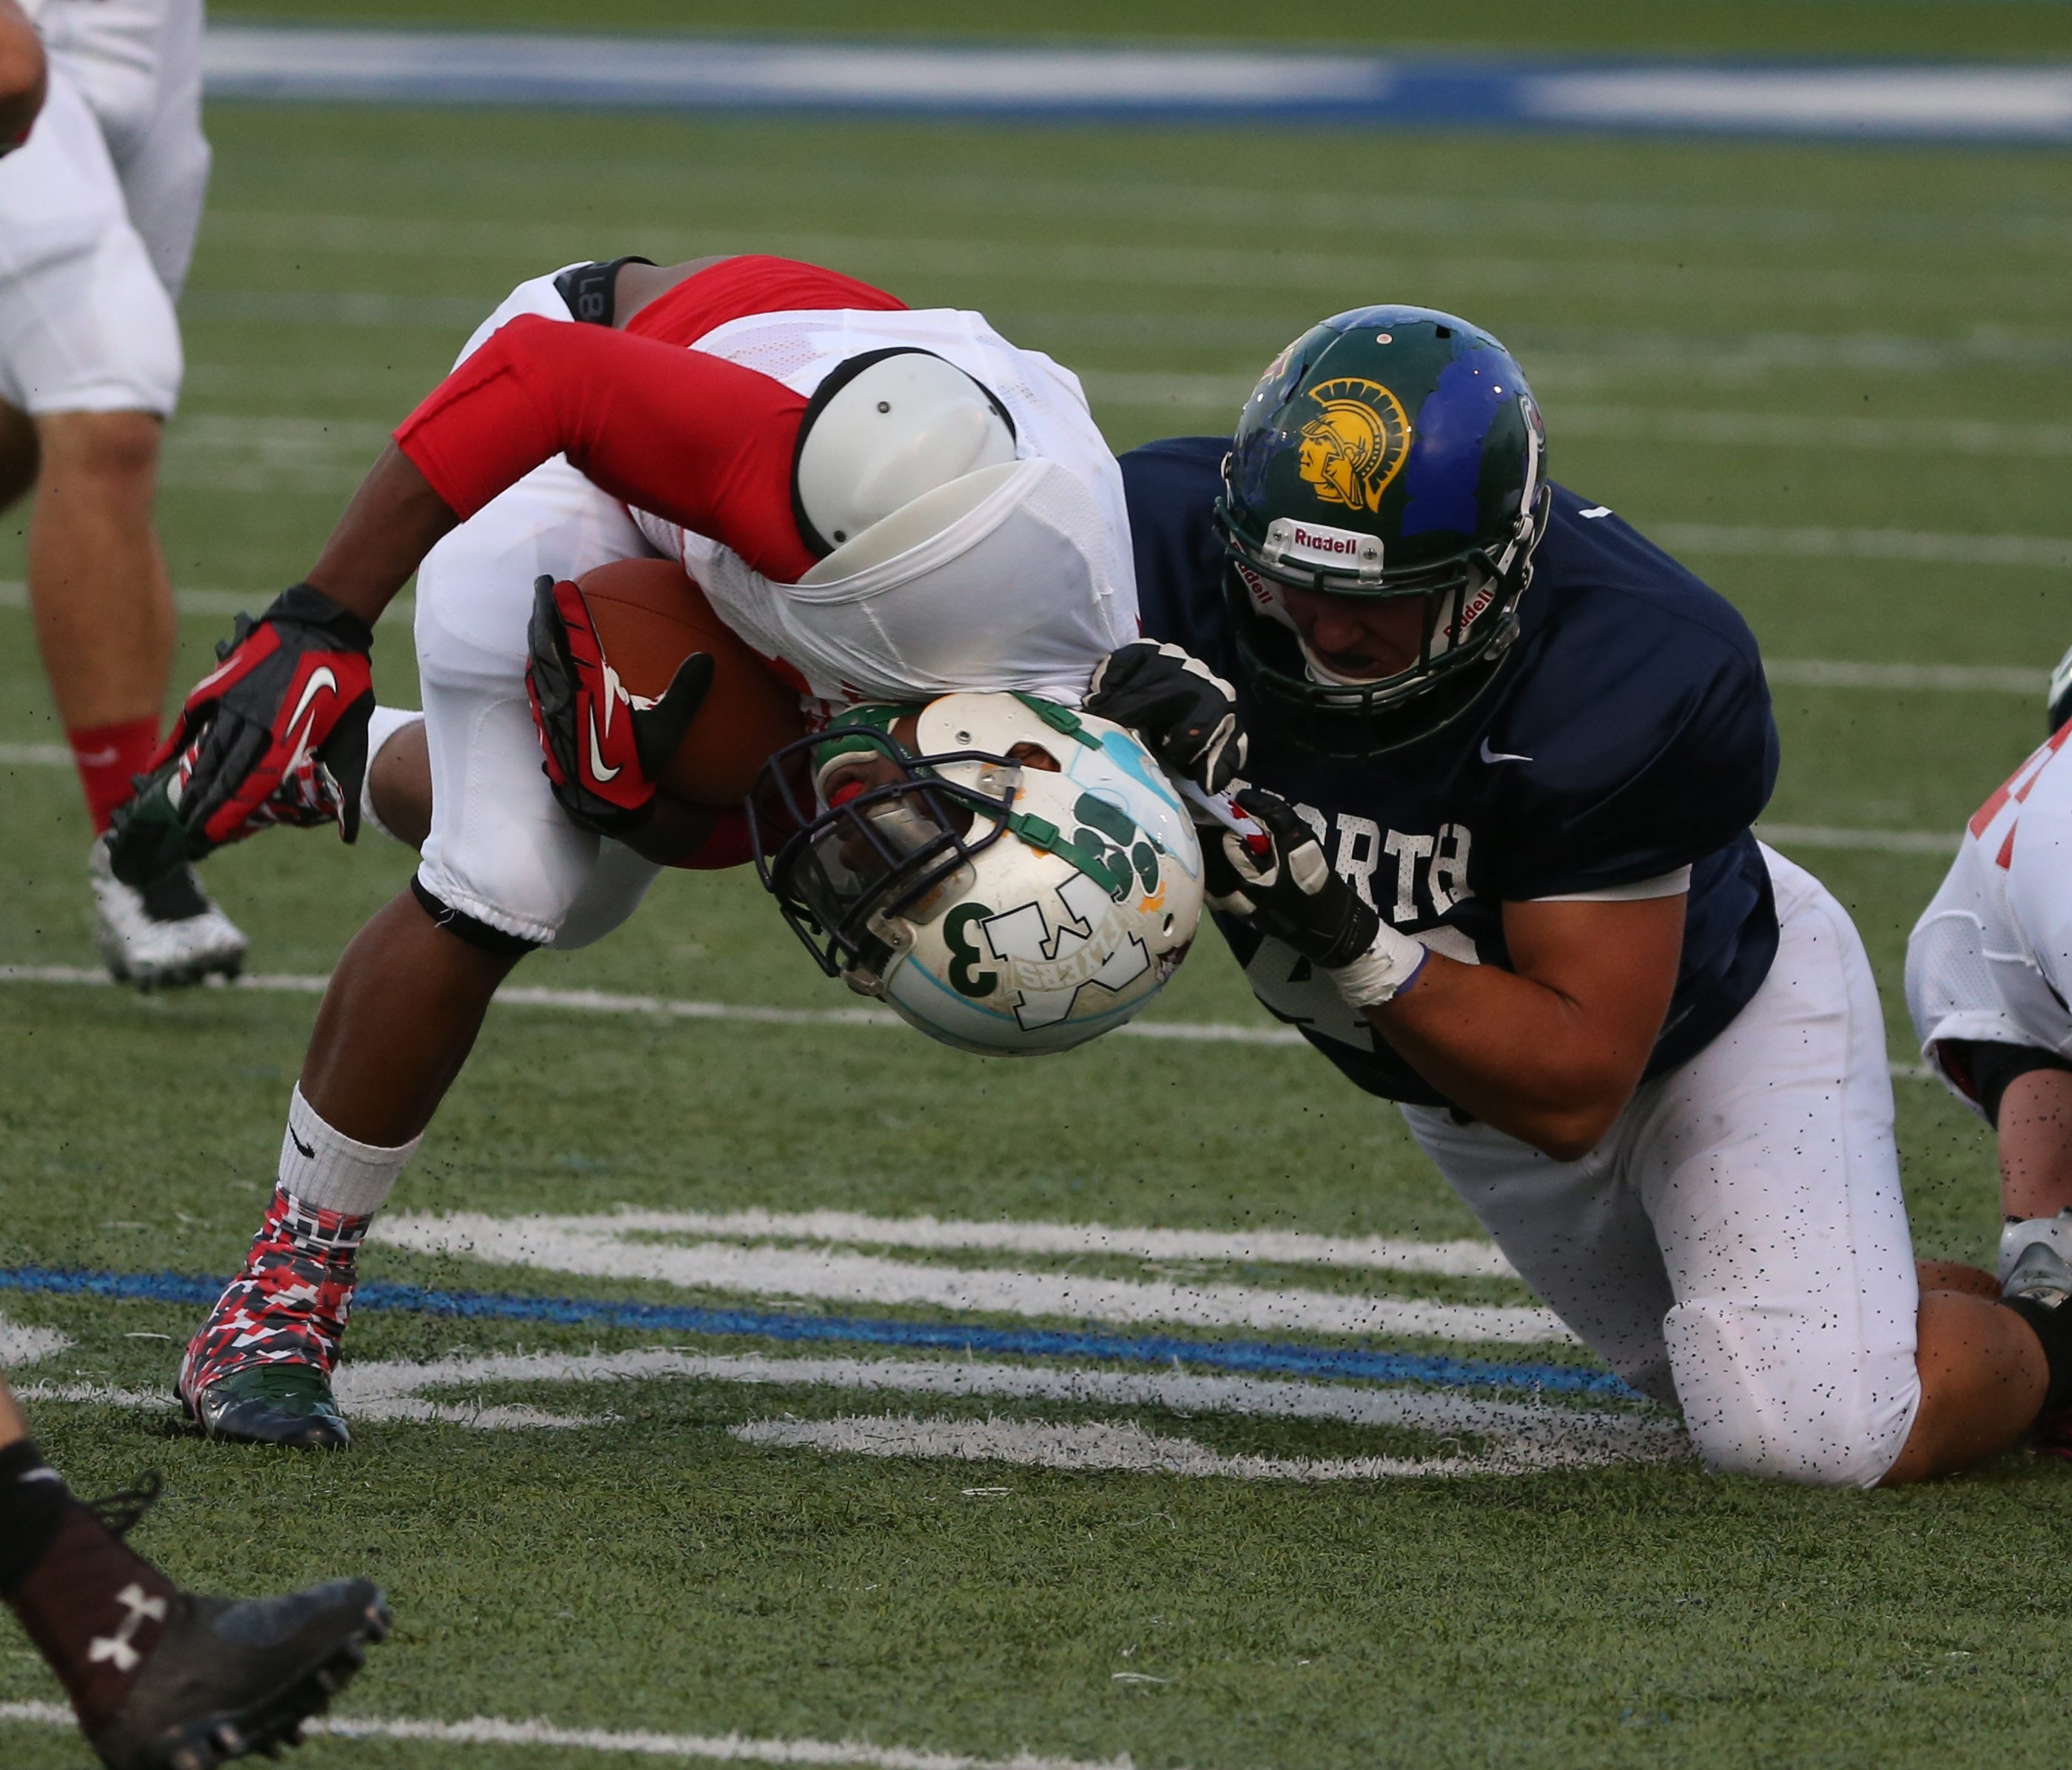 Jake Ames of the North squad tackles the South's Arenzo Thomas in the first quarter of the North's 26-10 victory in the Lions All-Star Classic.